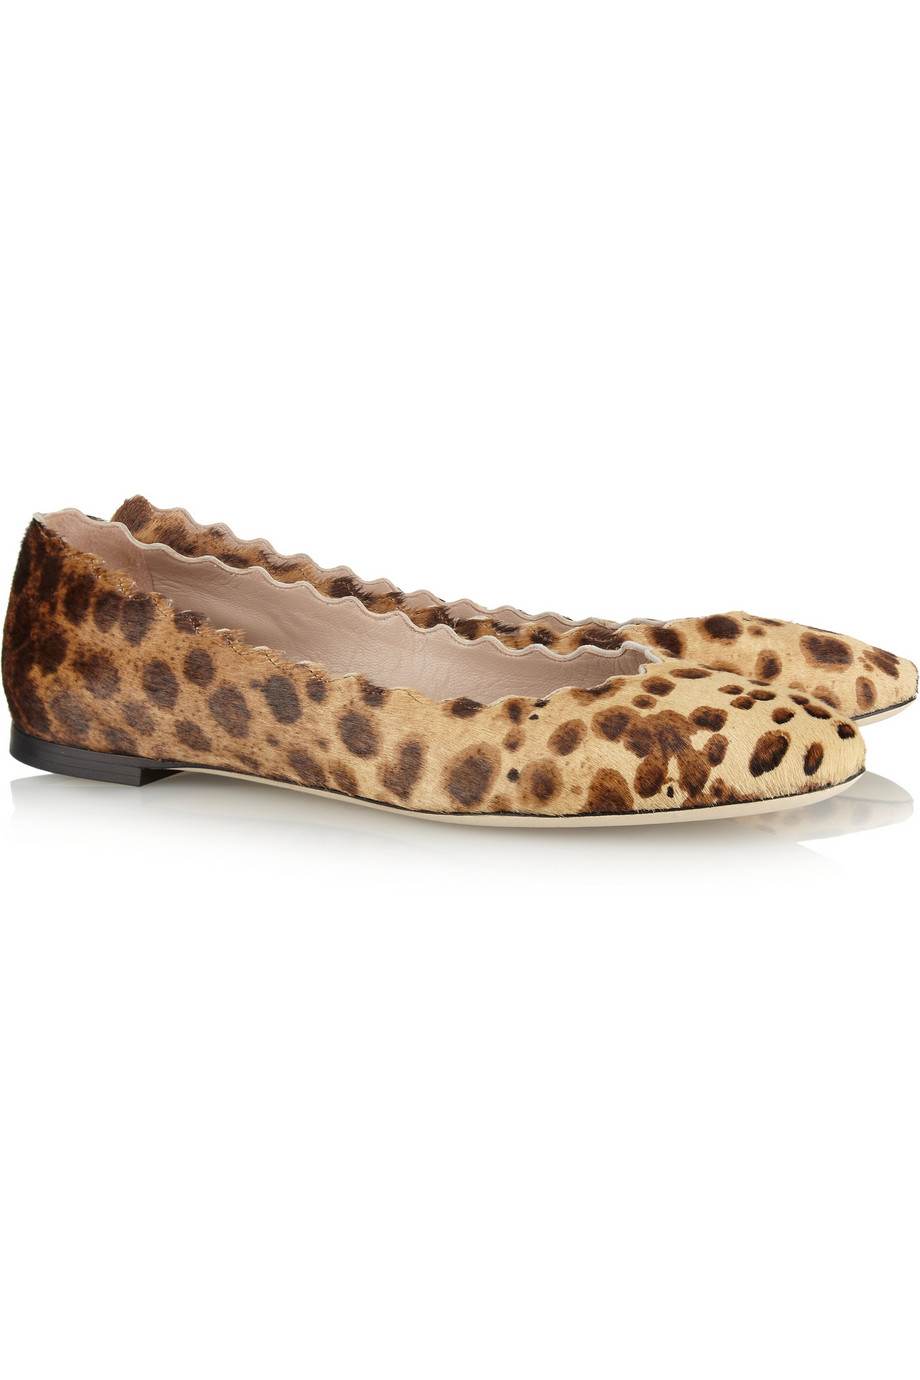 Aquazzura Women's Fearless Animal Print Ballet Flat With Genuine Calf Hair Trim CbE9Y5QY